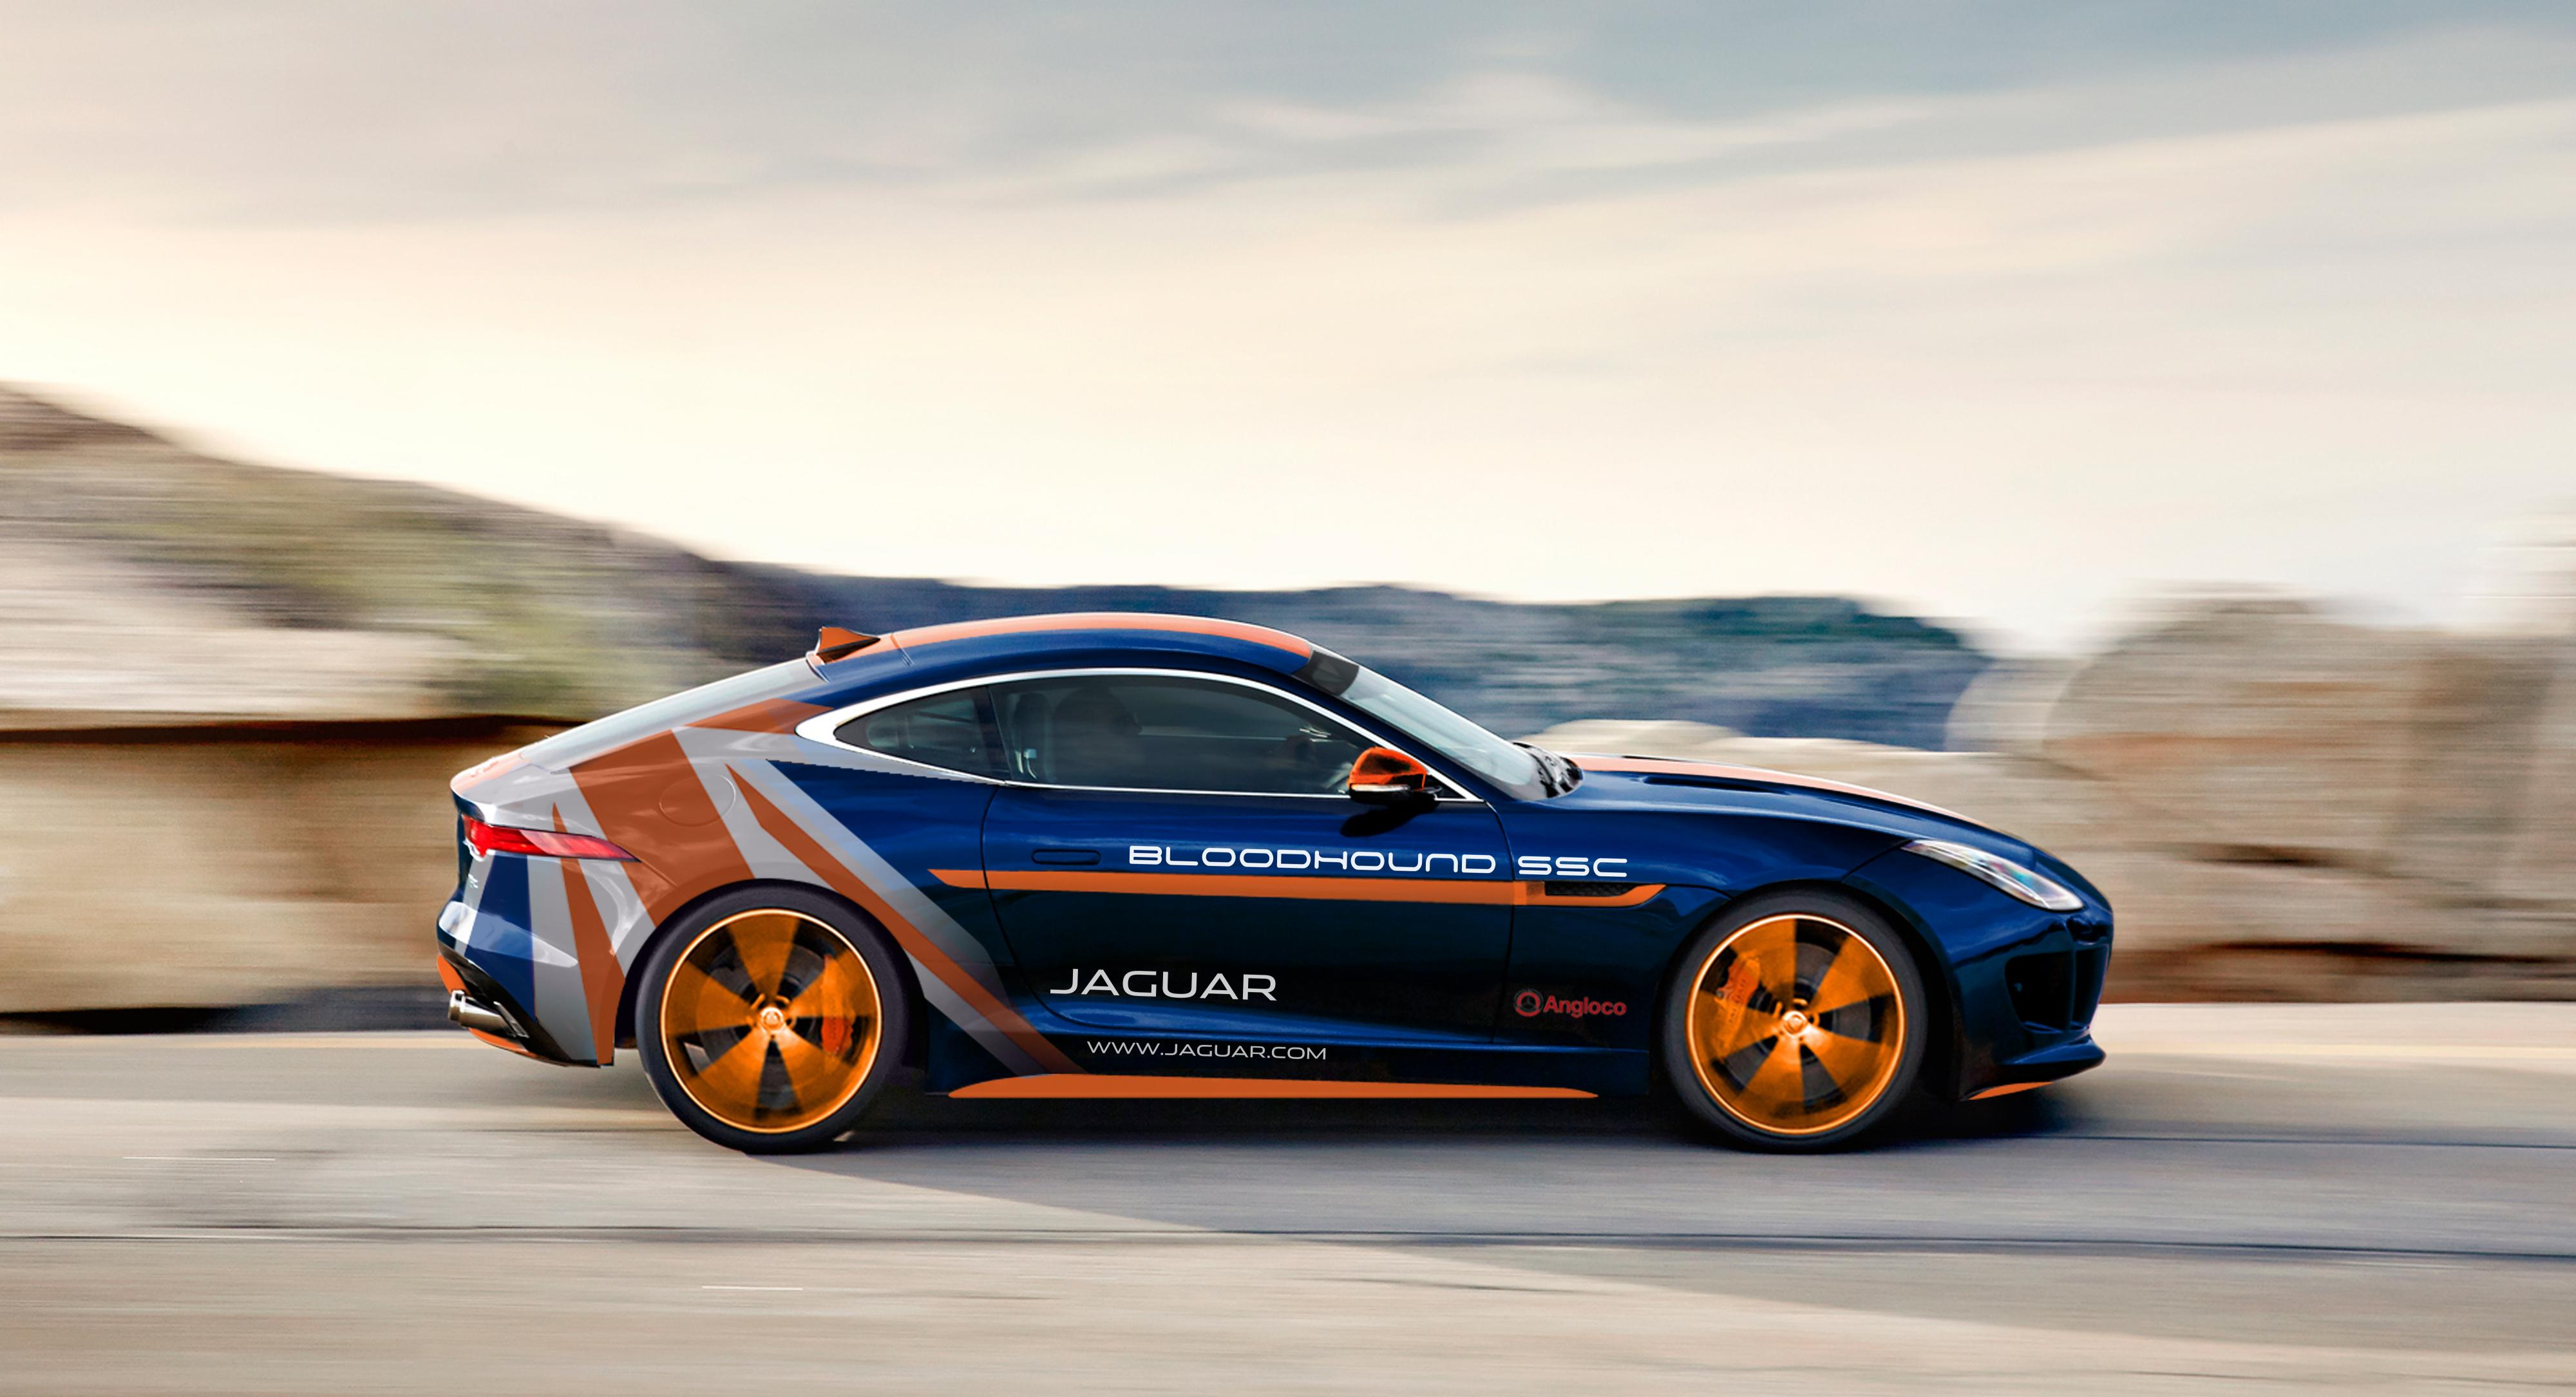 Custom Jaguar F Type Will Make Sure Bloodhound Ssc Shatters The World Land Speed Record